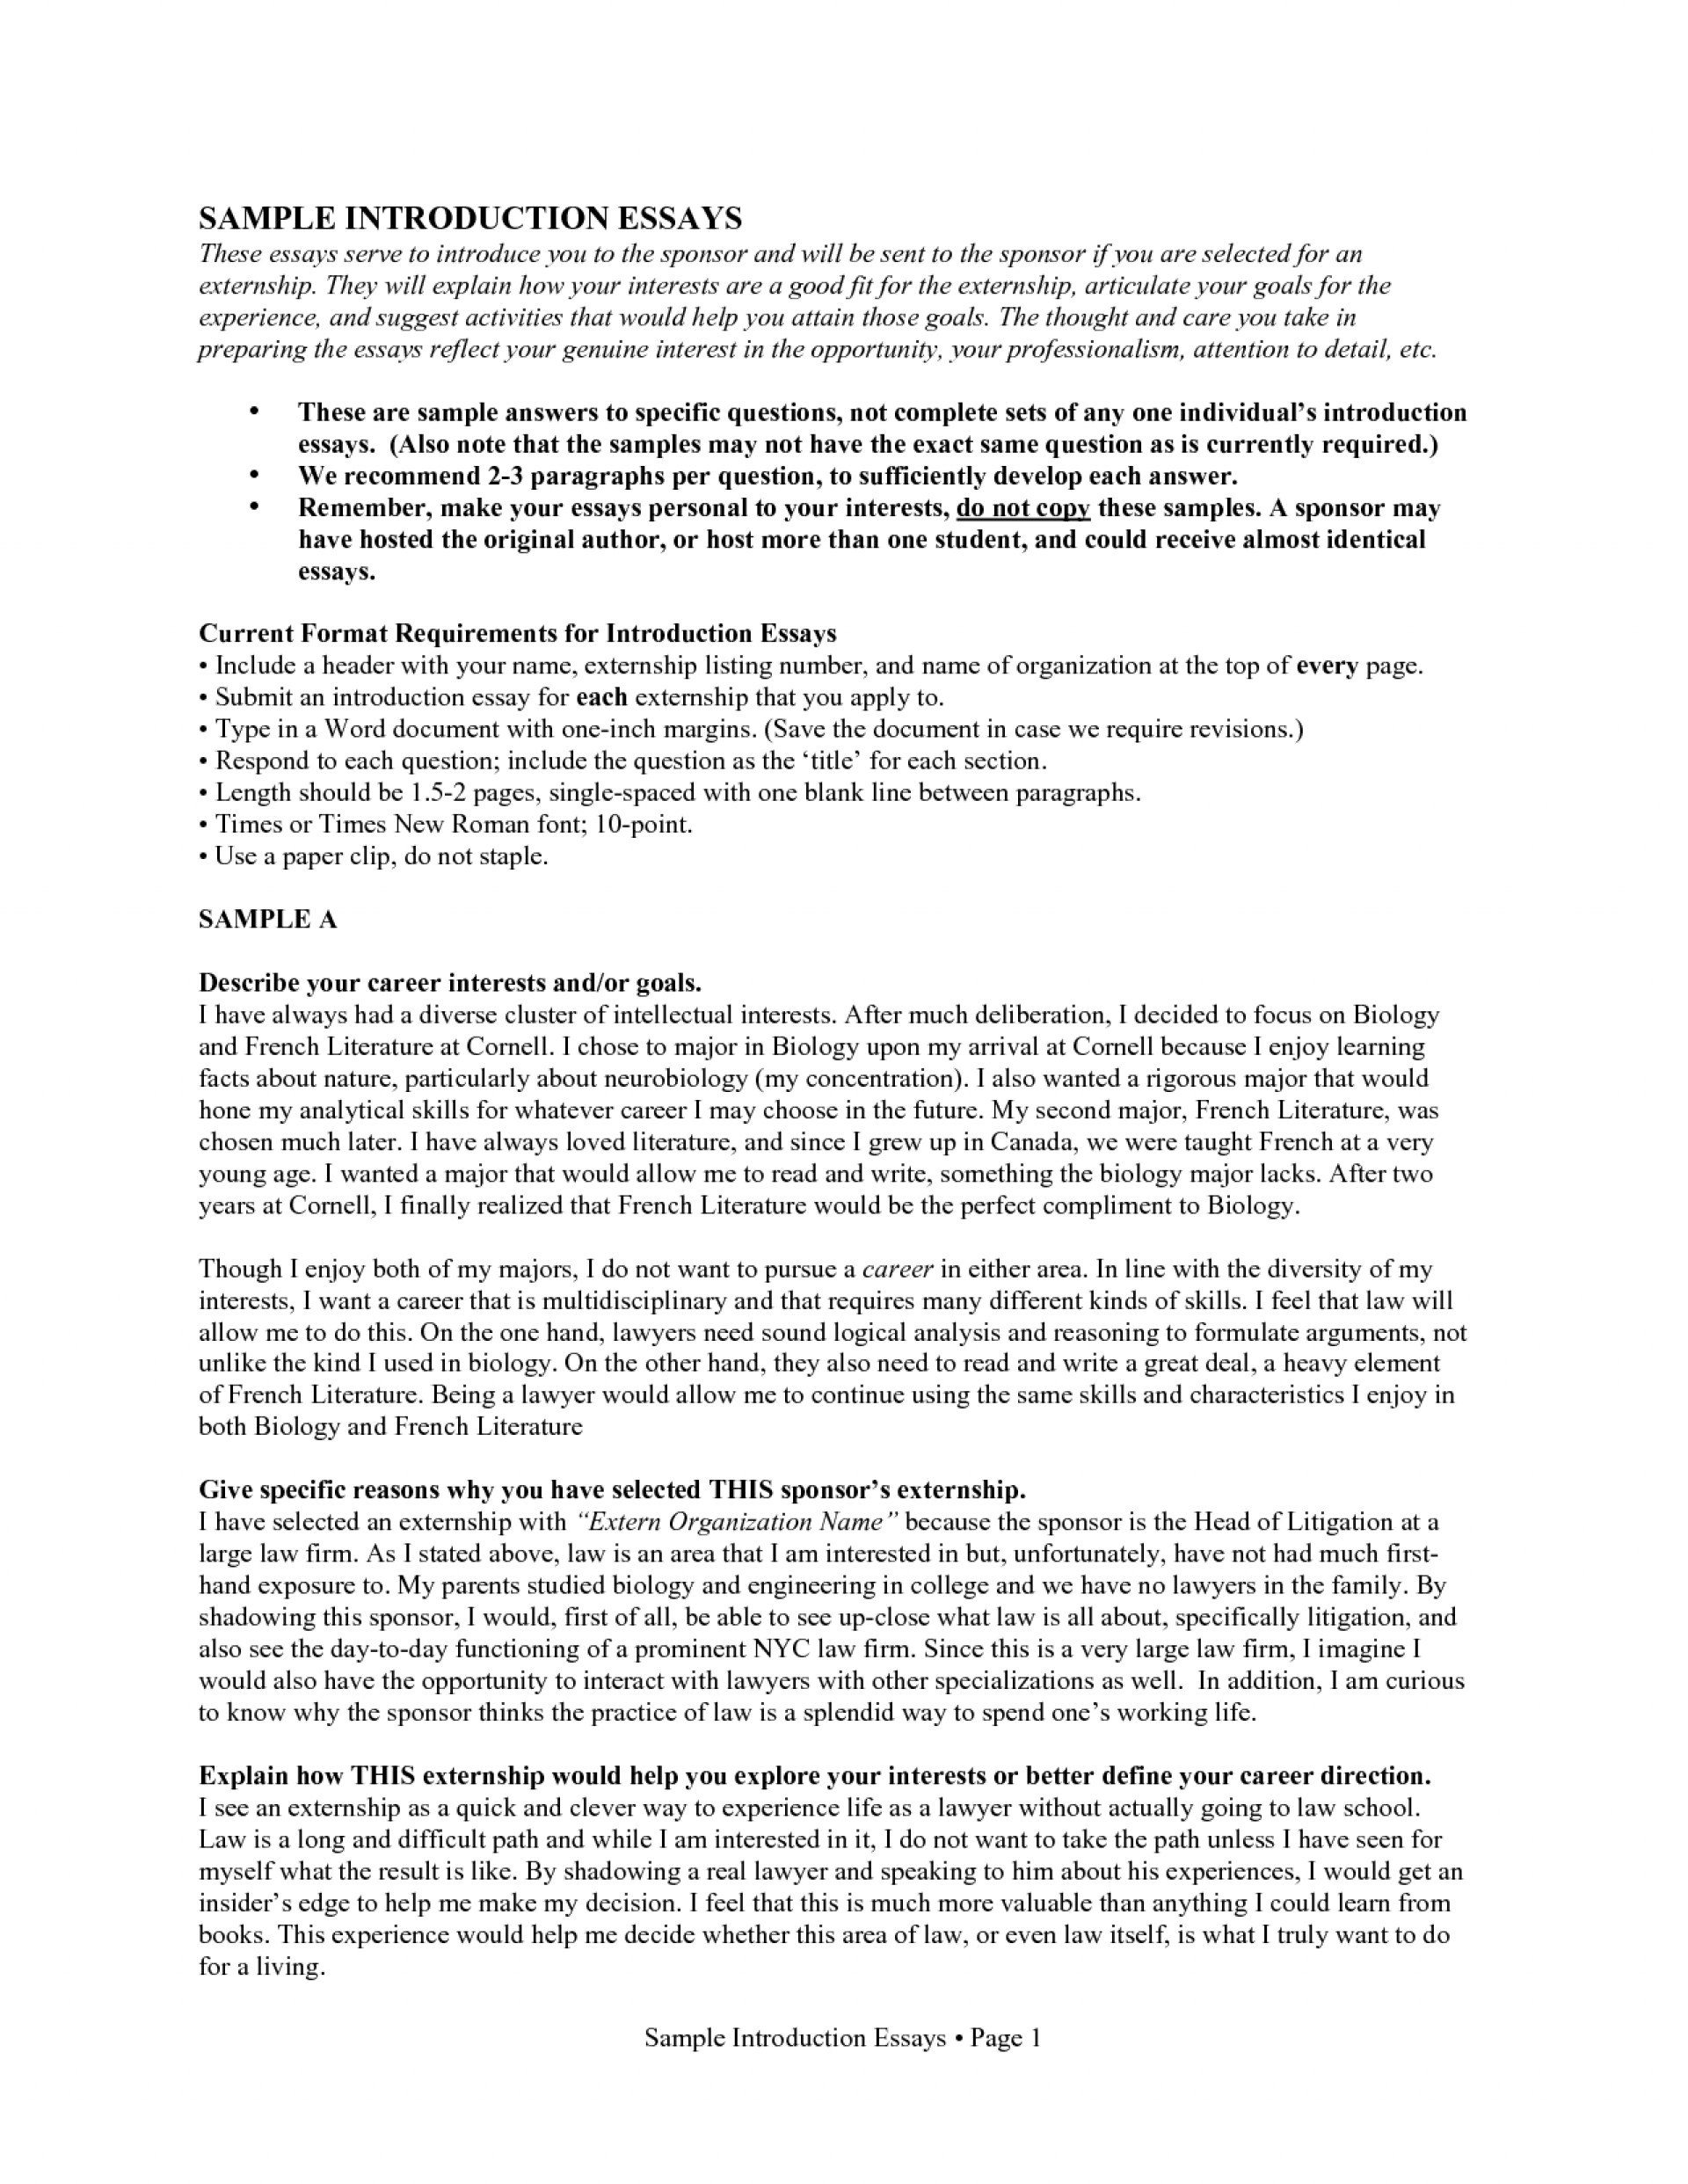 012 Essay About Your Self Discipline X Jpg How To Write An 8vvv9 Introduce Myself Writing Example Singular A Yourself Narrative Short Paper Without Using I 1920